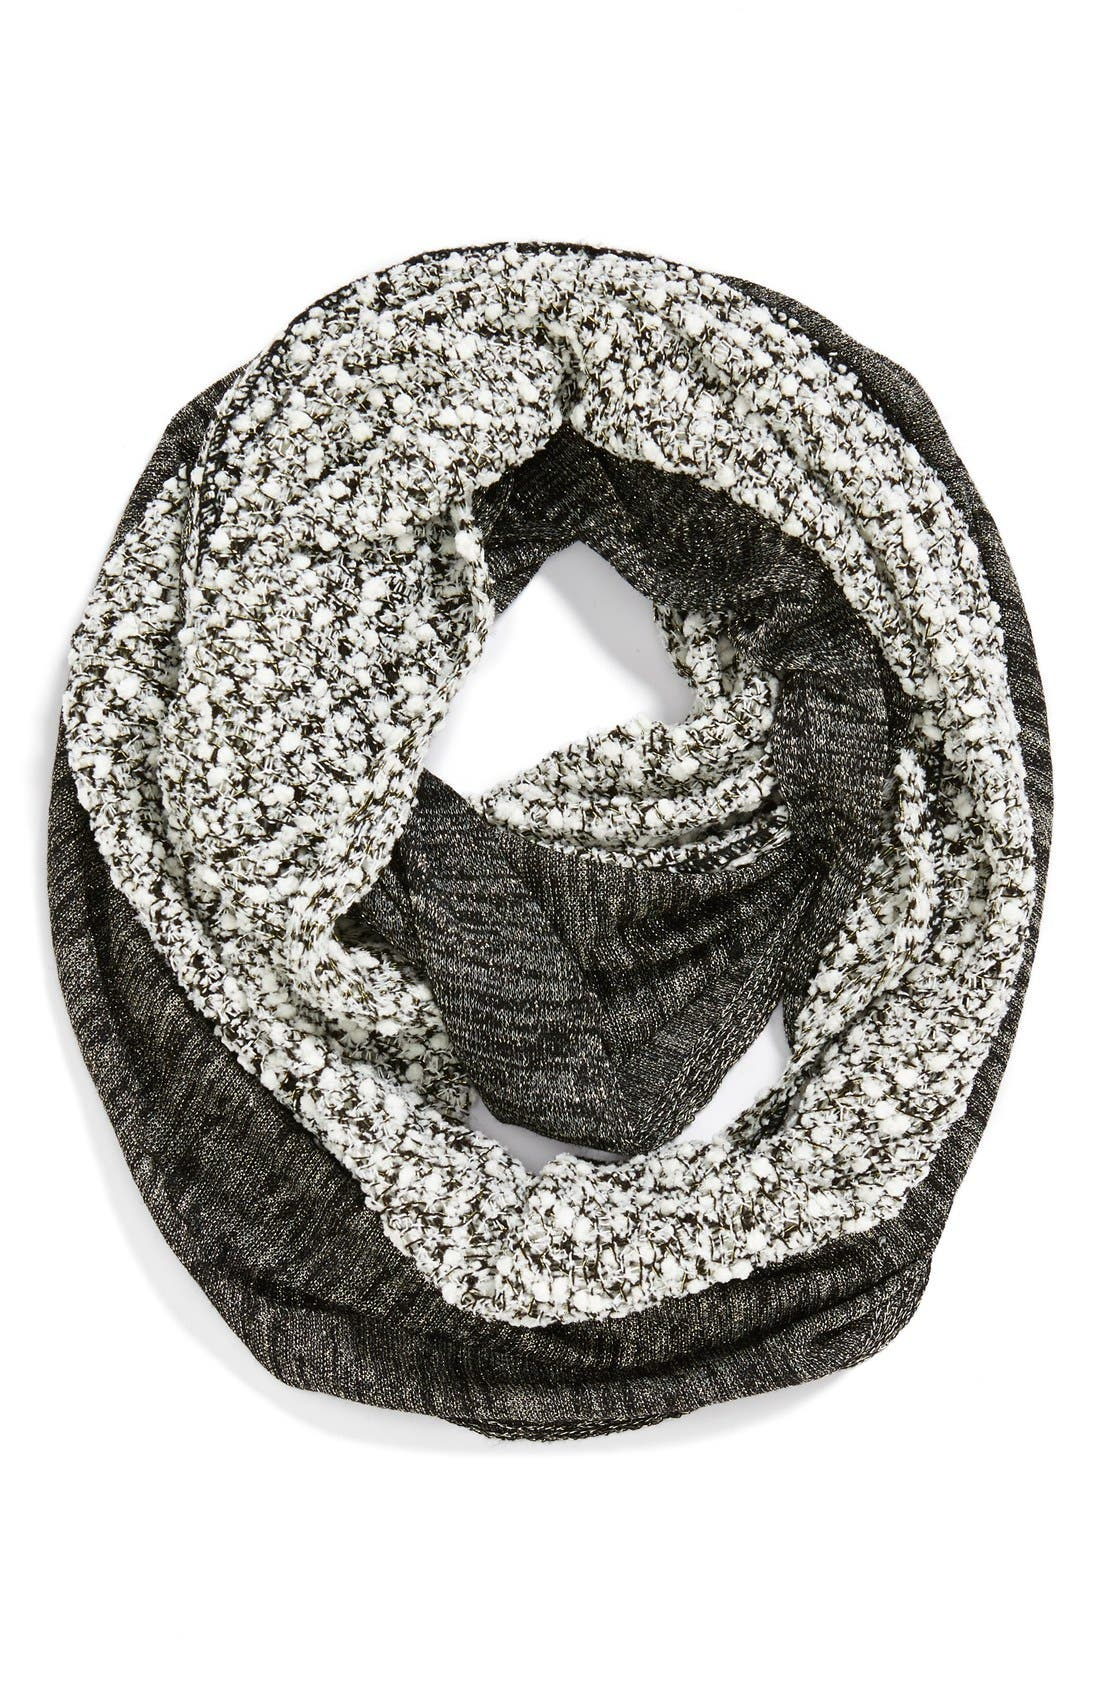 Main Image - Collection XIIX Metallic Confetti Mixed Media Infinity Scarf